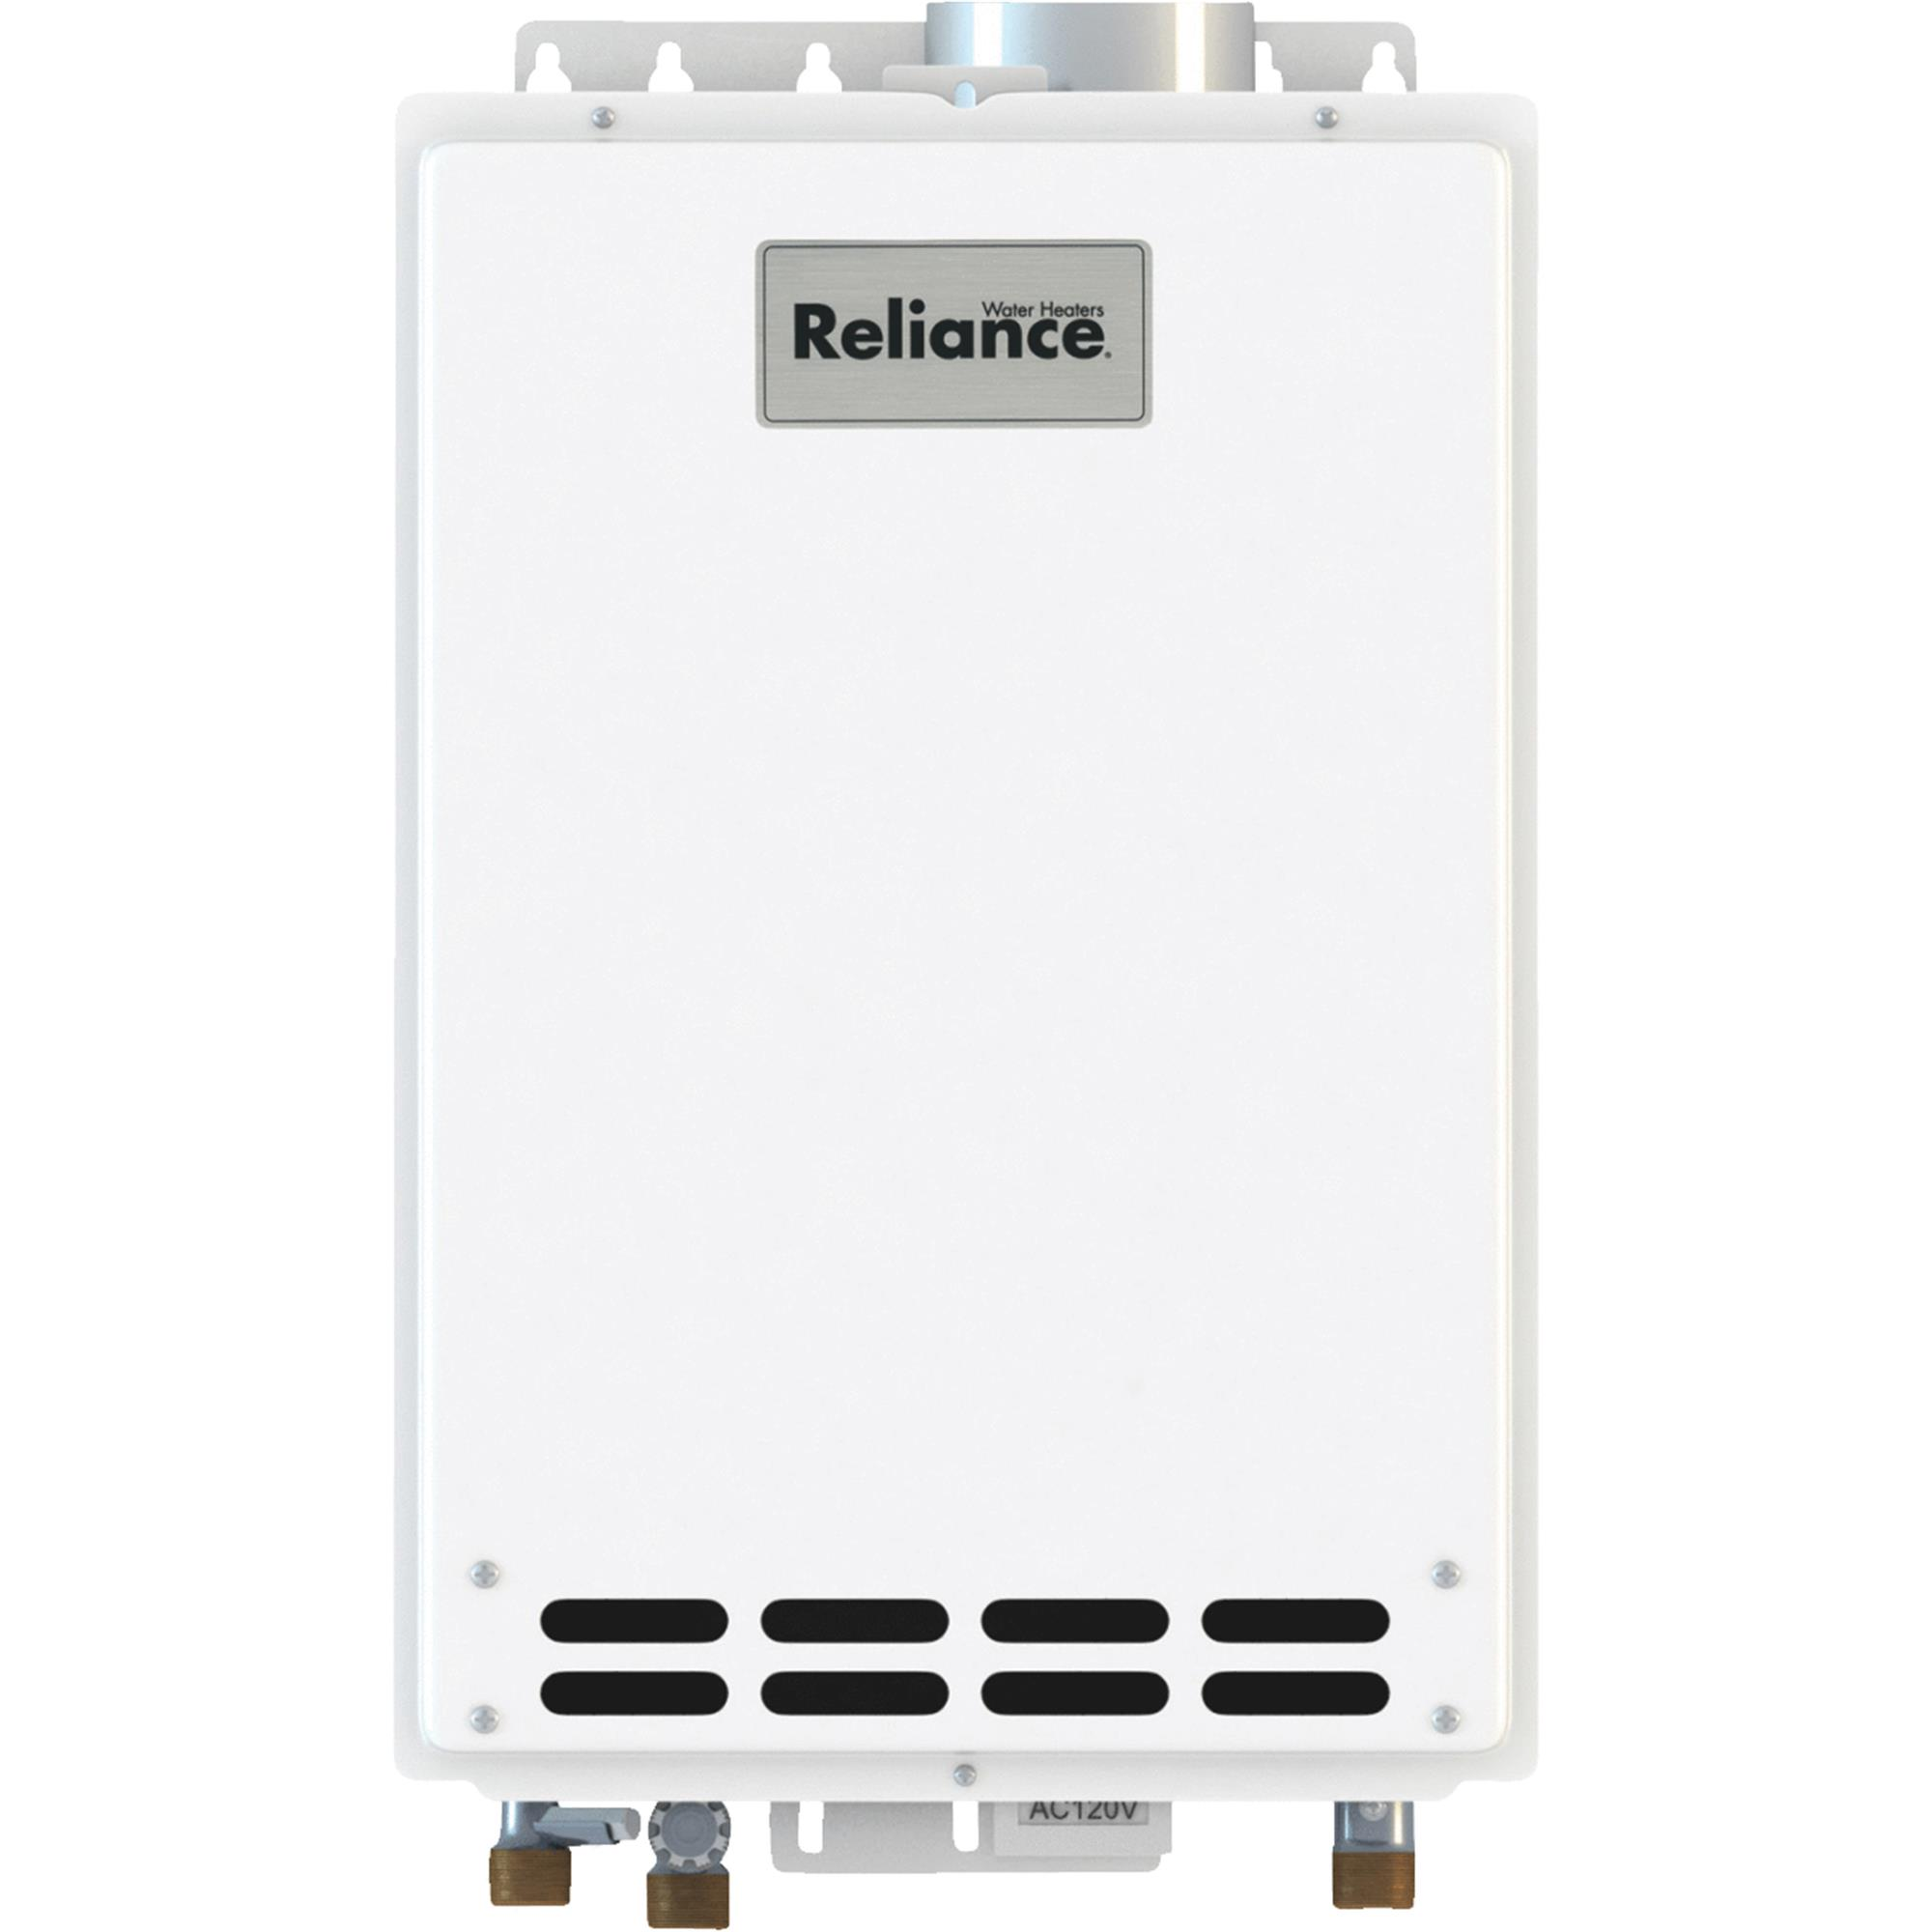 Reliance Series TS-110-GI Natural Gas Tankless Water Heater